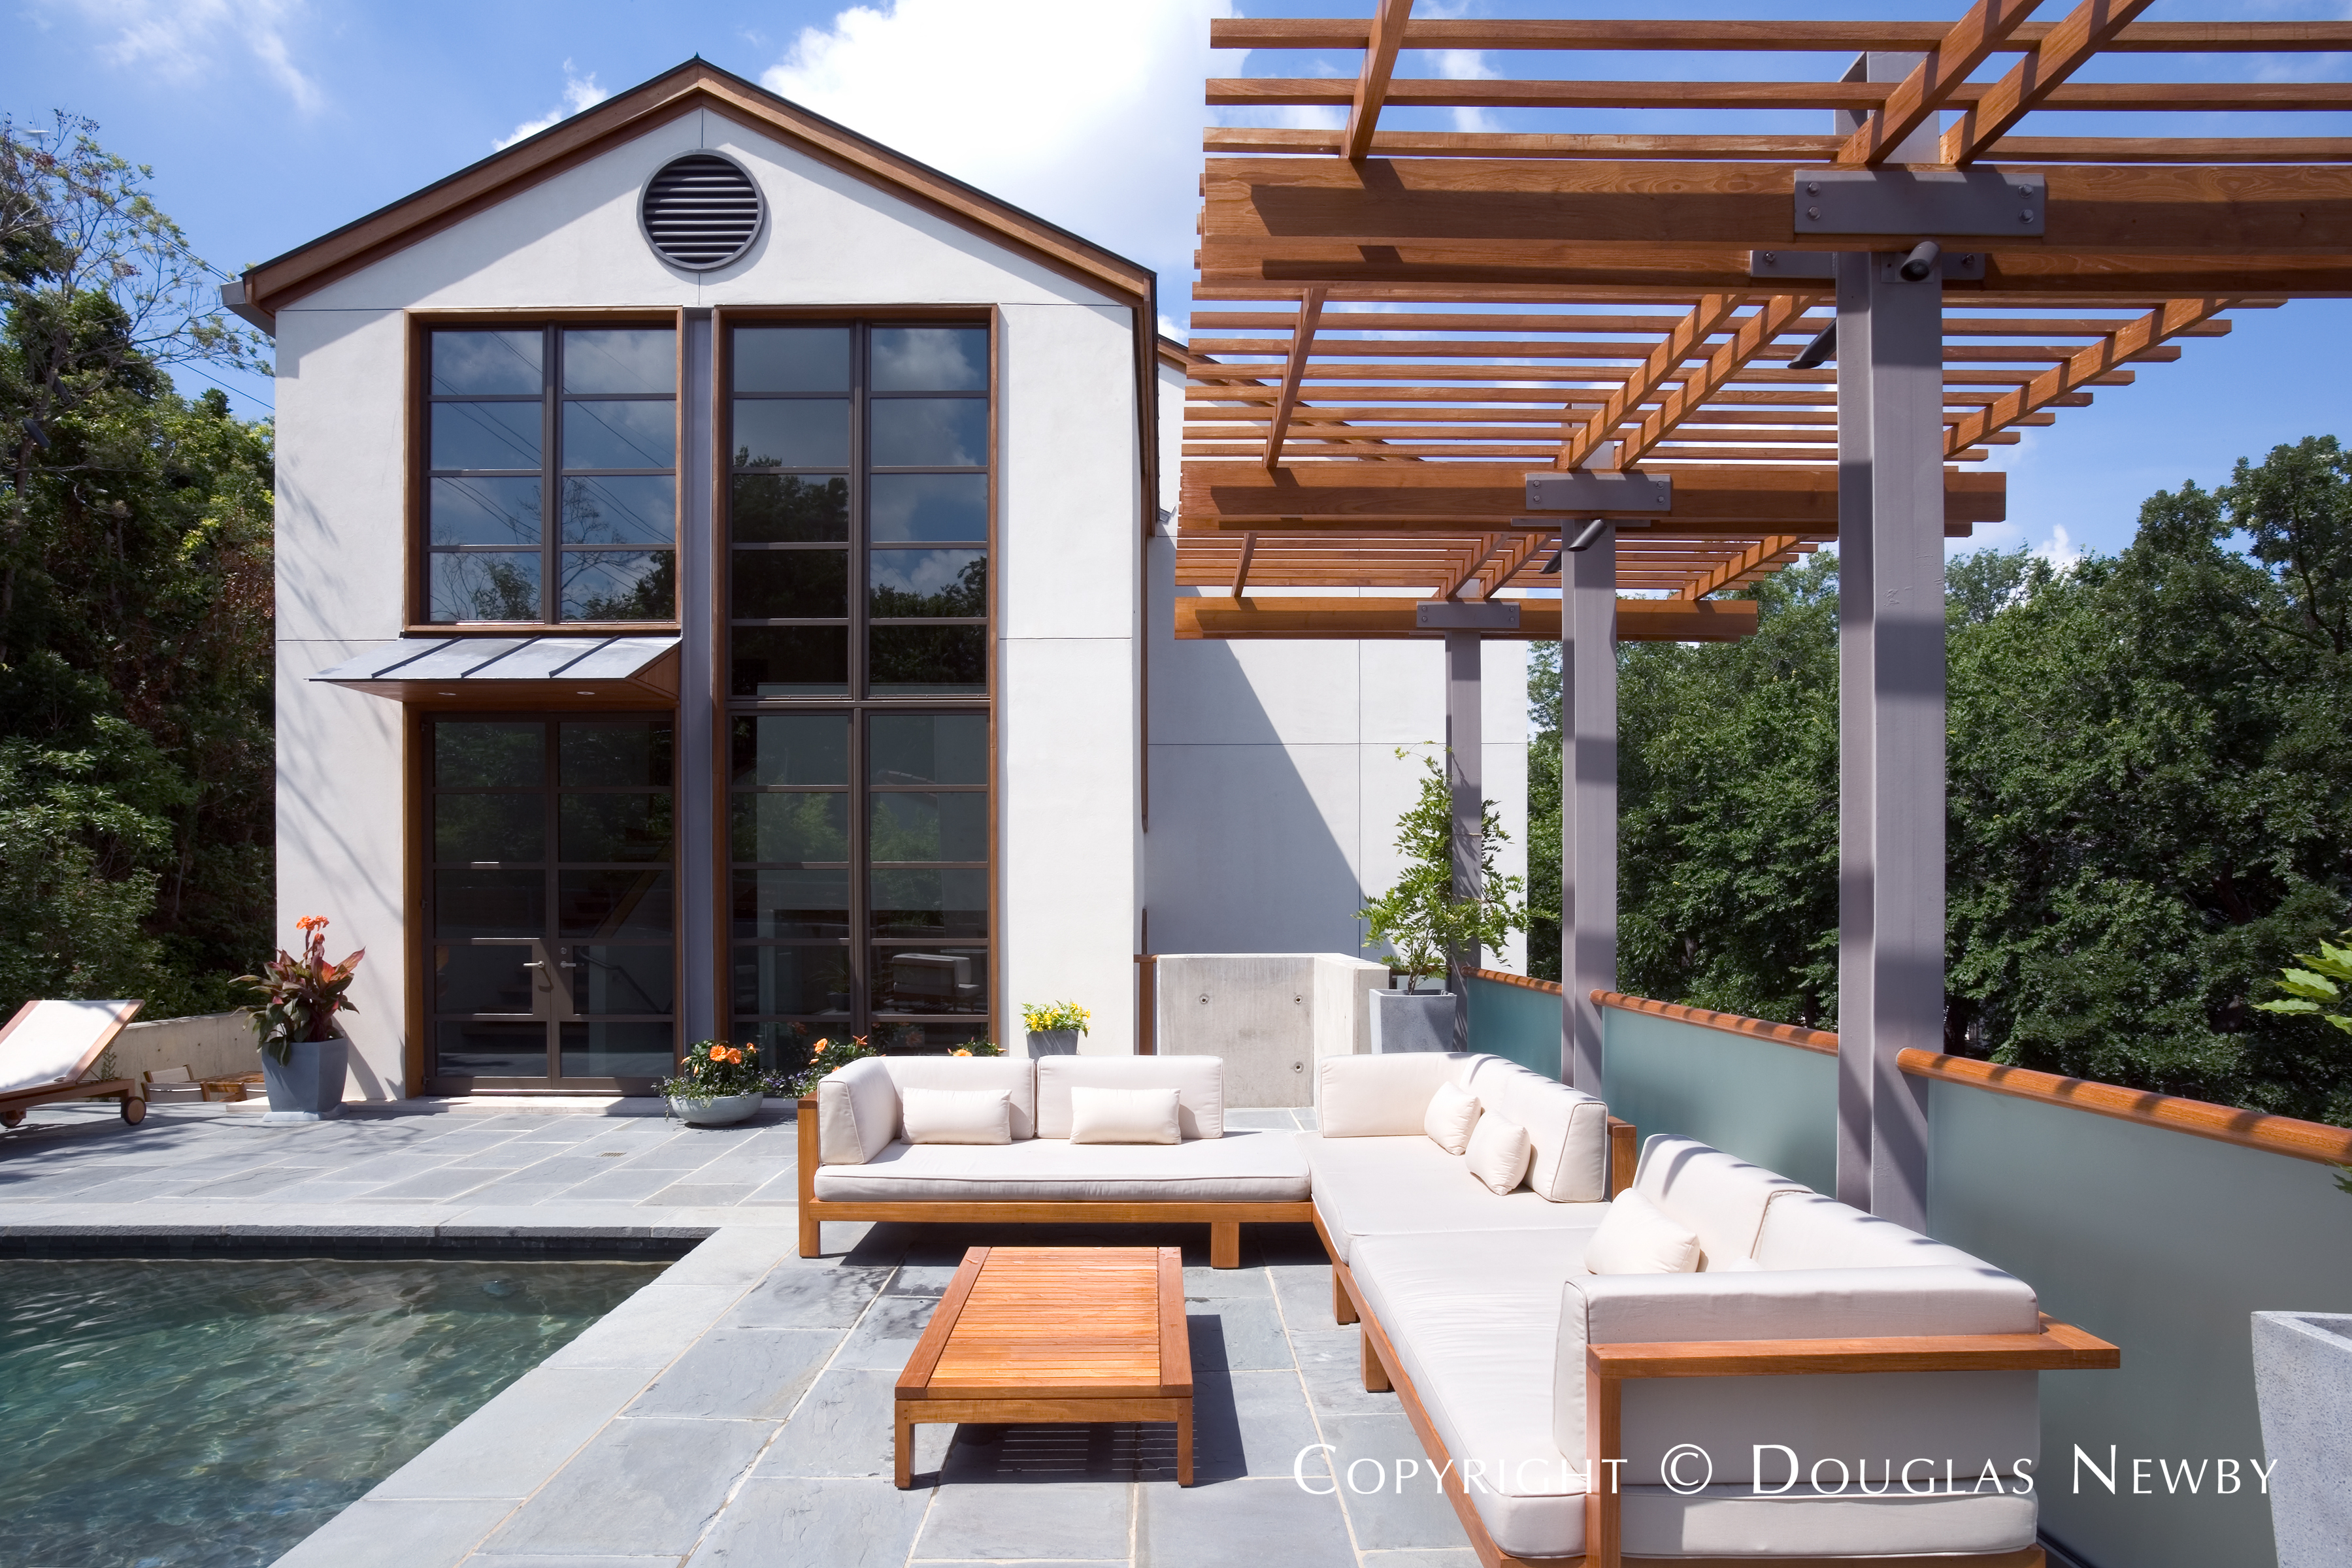 Frank Welch Modern Home built in the 2000s